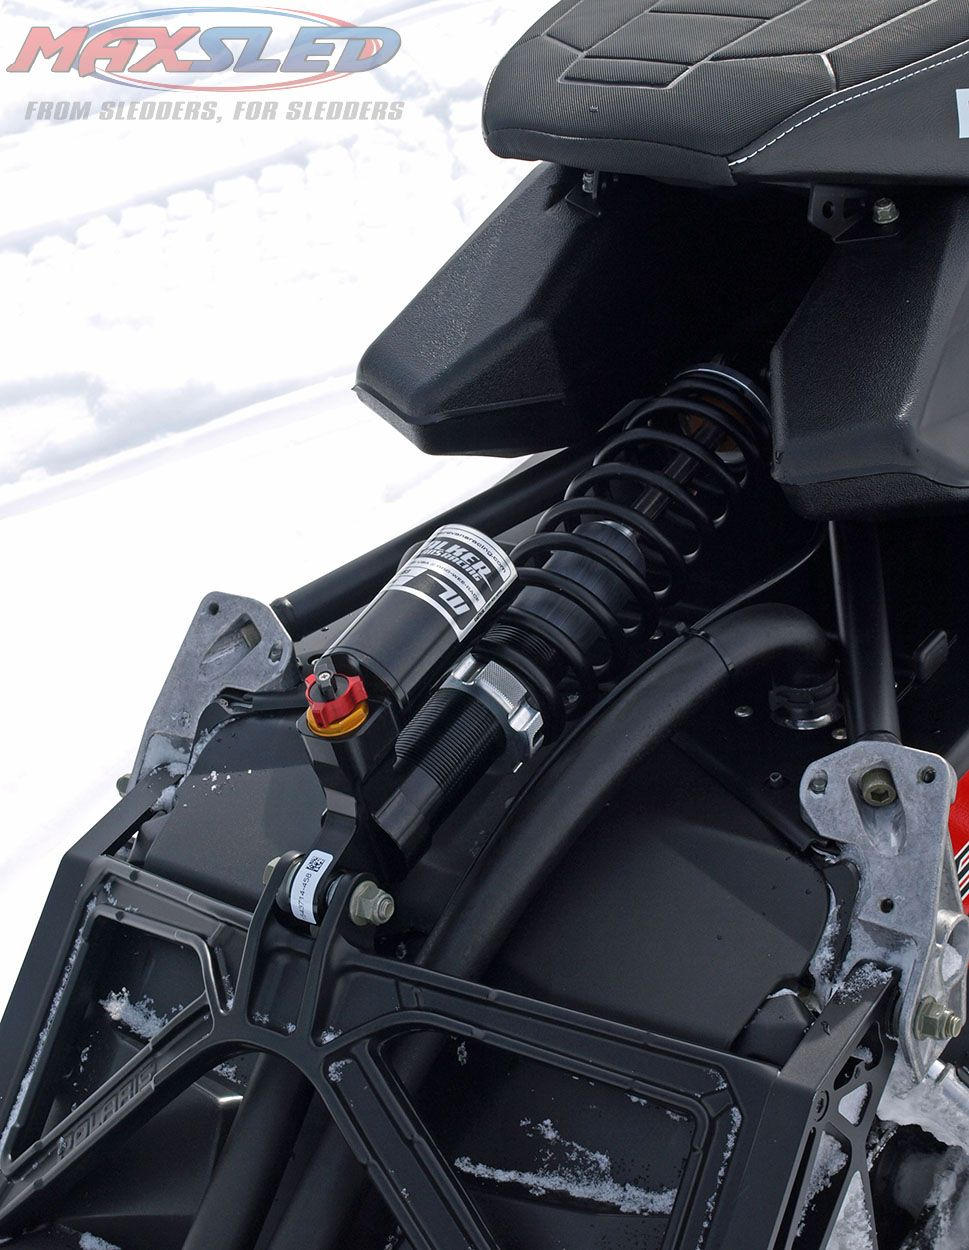 Fancy Polaris Pro Ride 800 Wiring A Switch And Outlet Combination